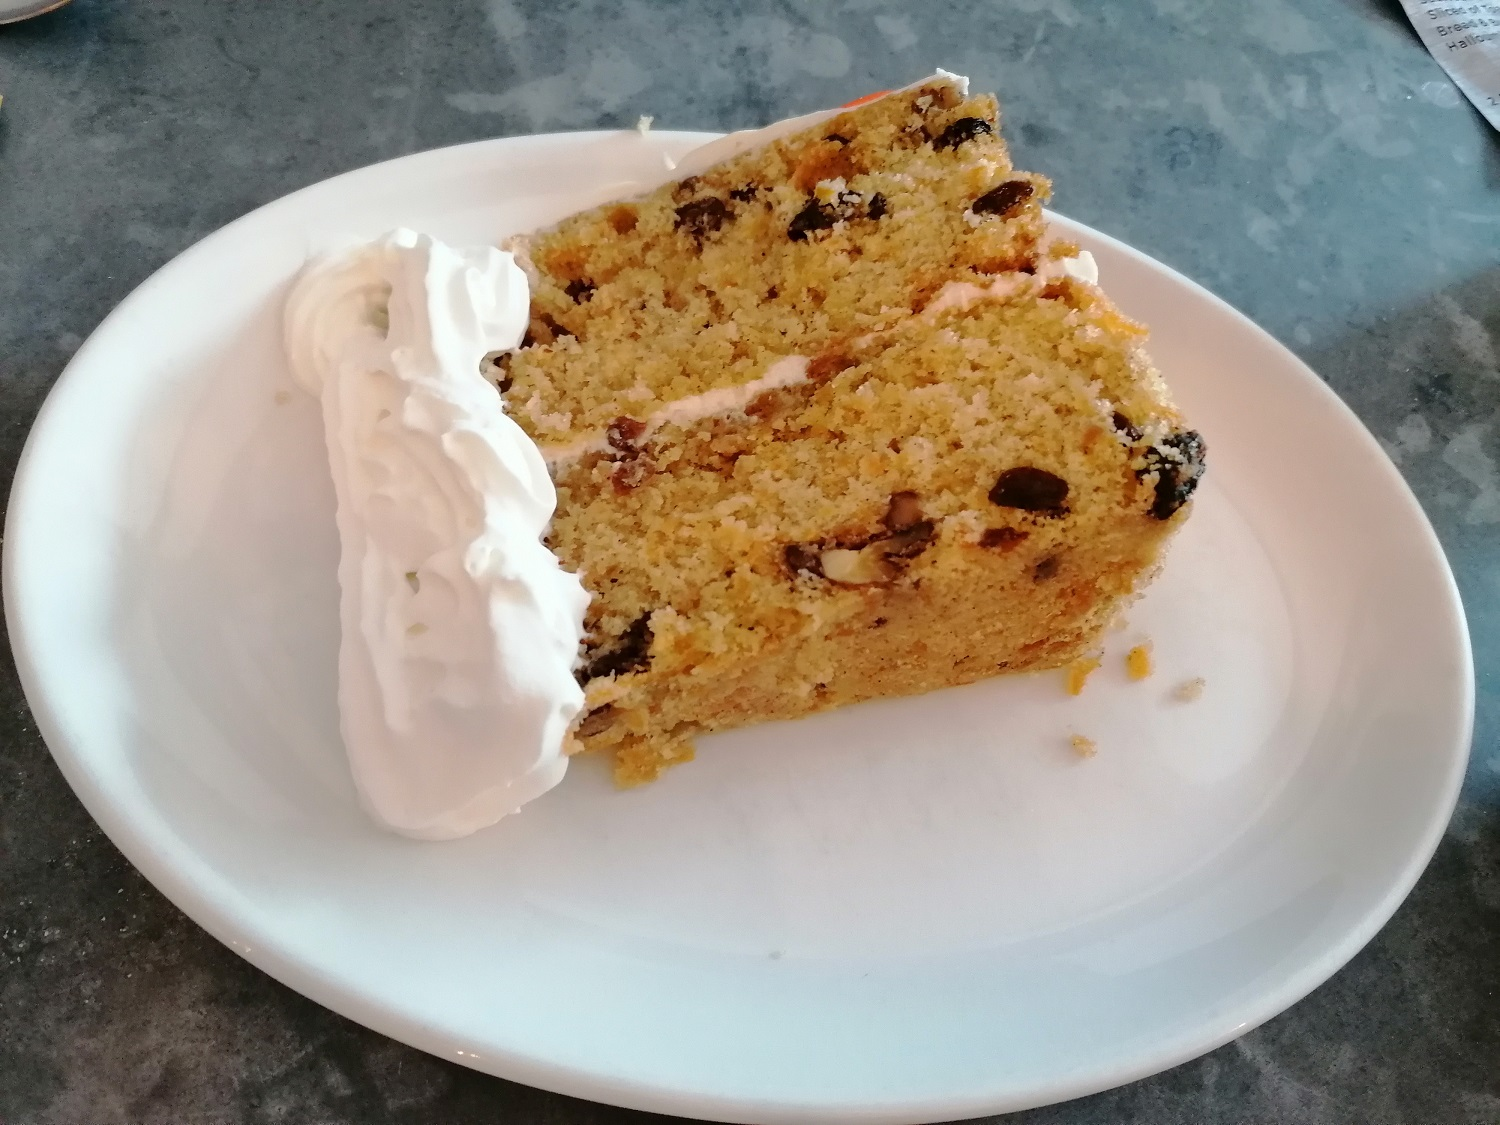 Home baked carrot cake in Hampshire